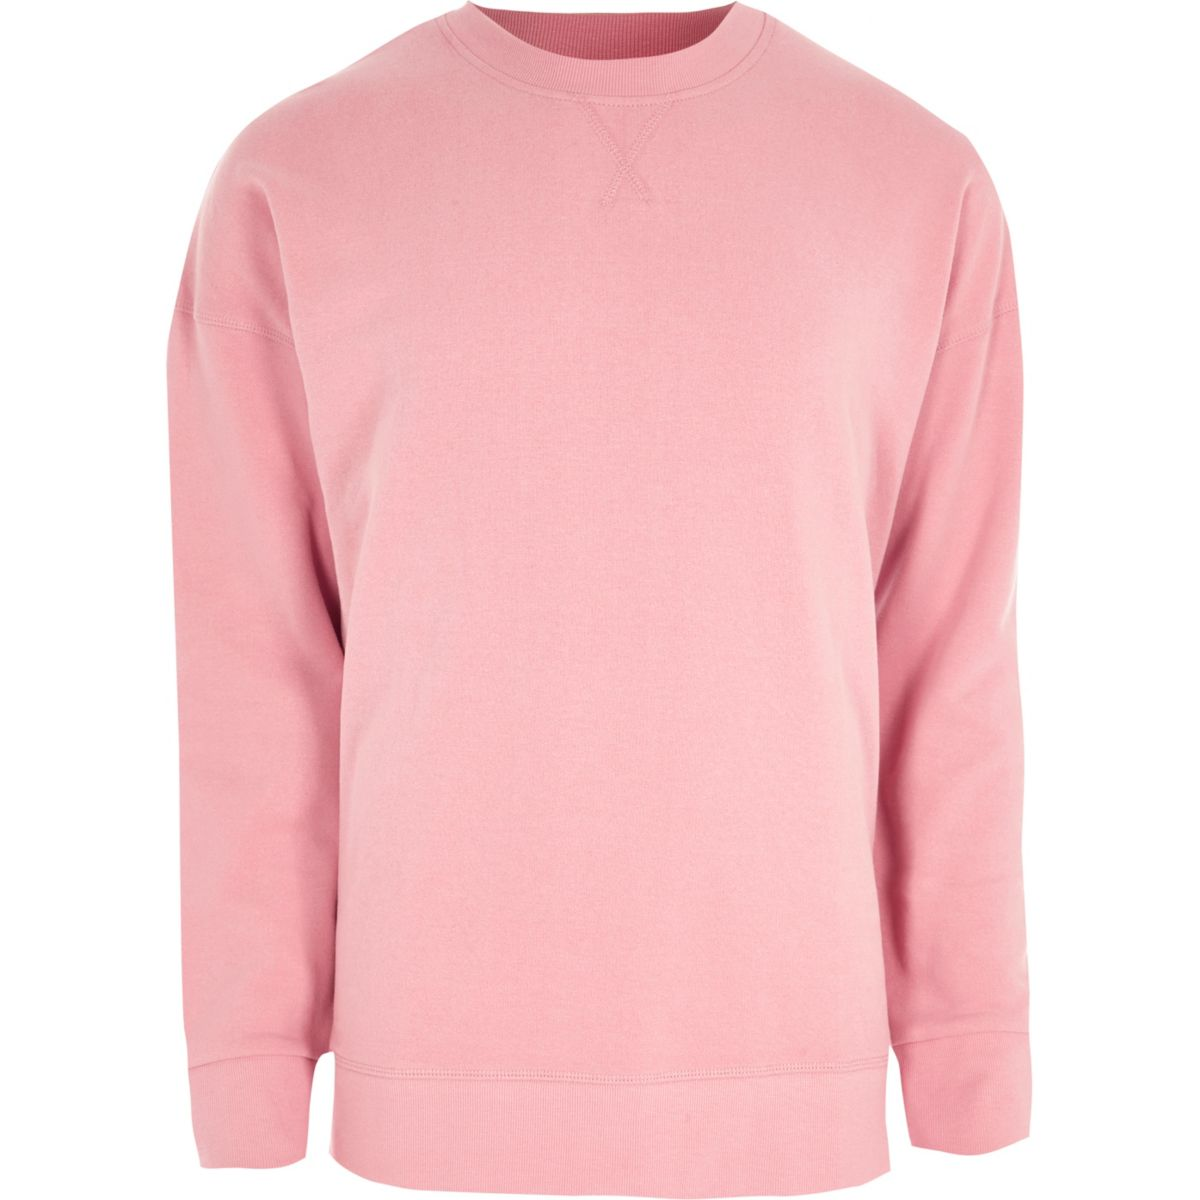 Pink crew neck oversized sweatshirt